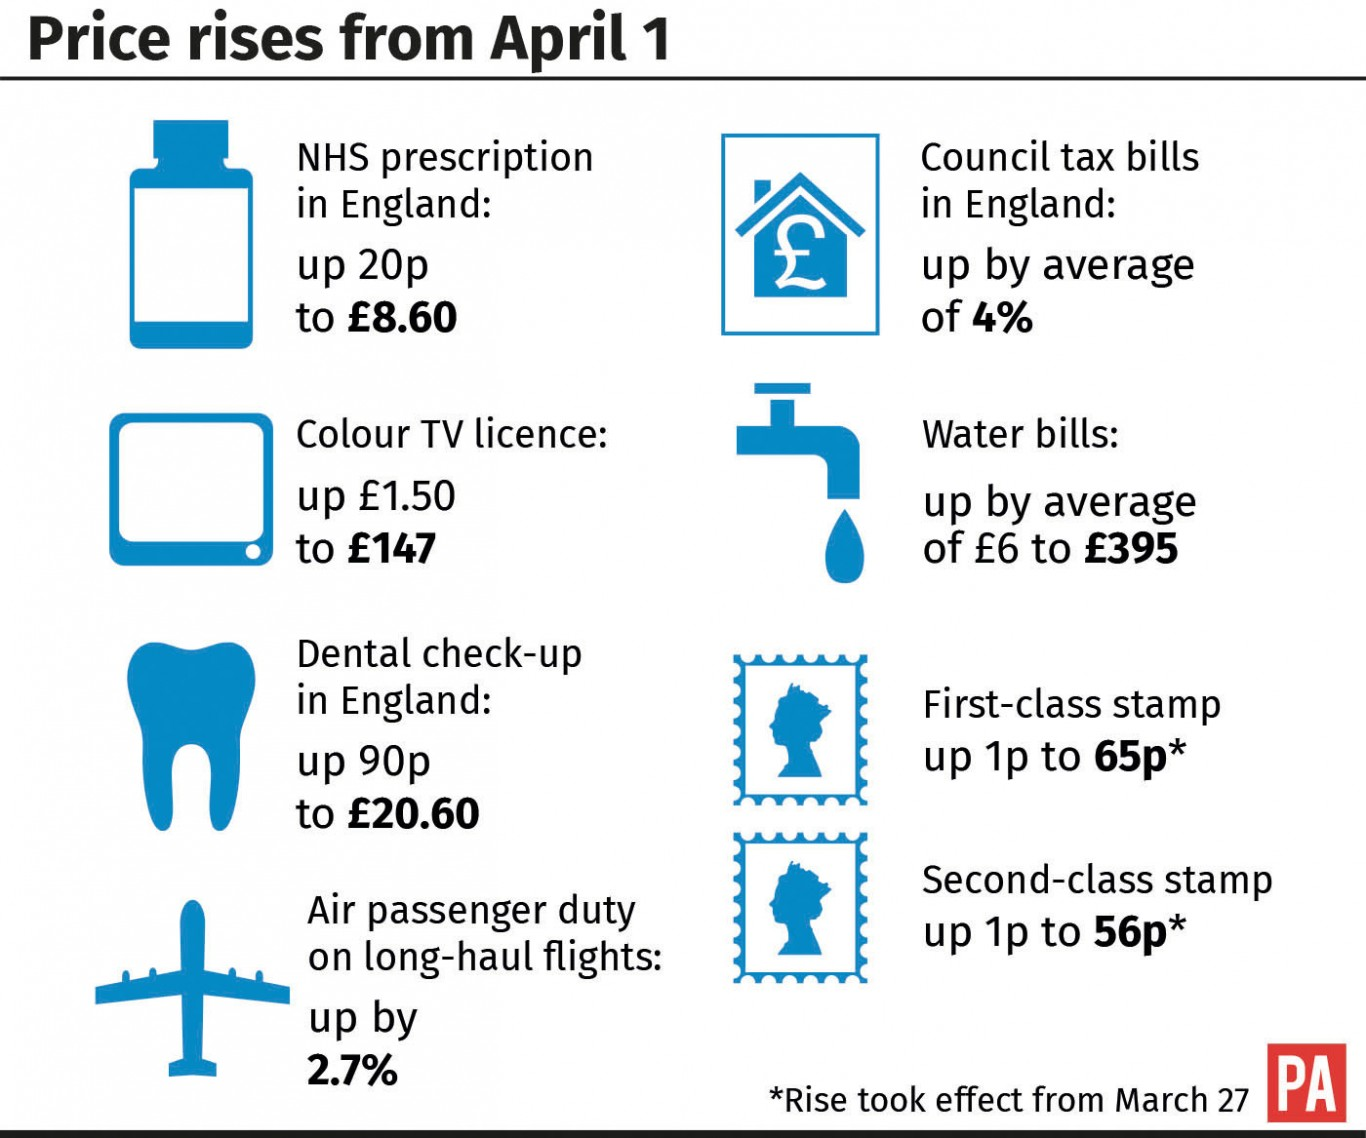 Price rises from April 1.